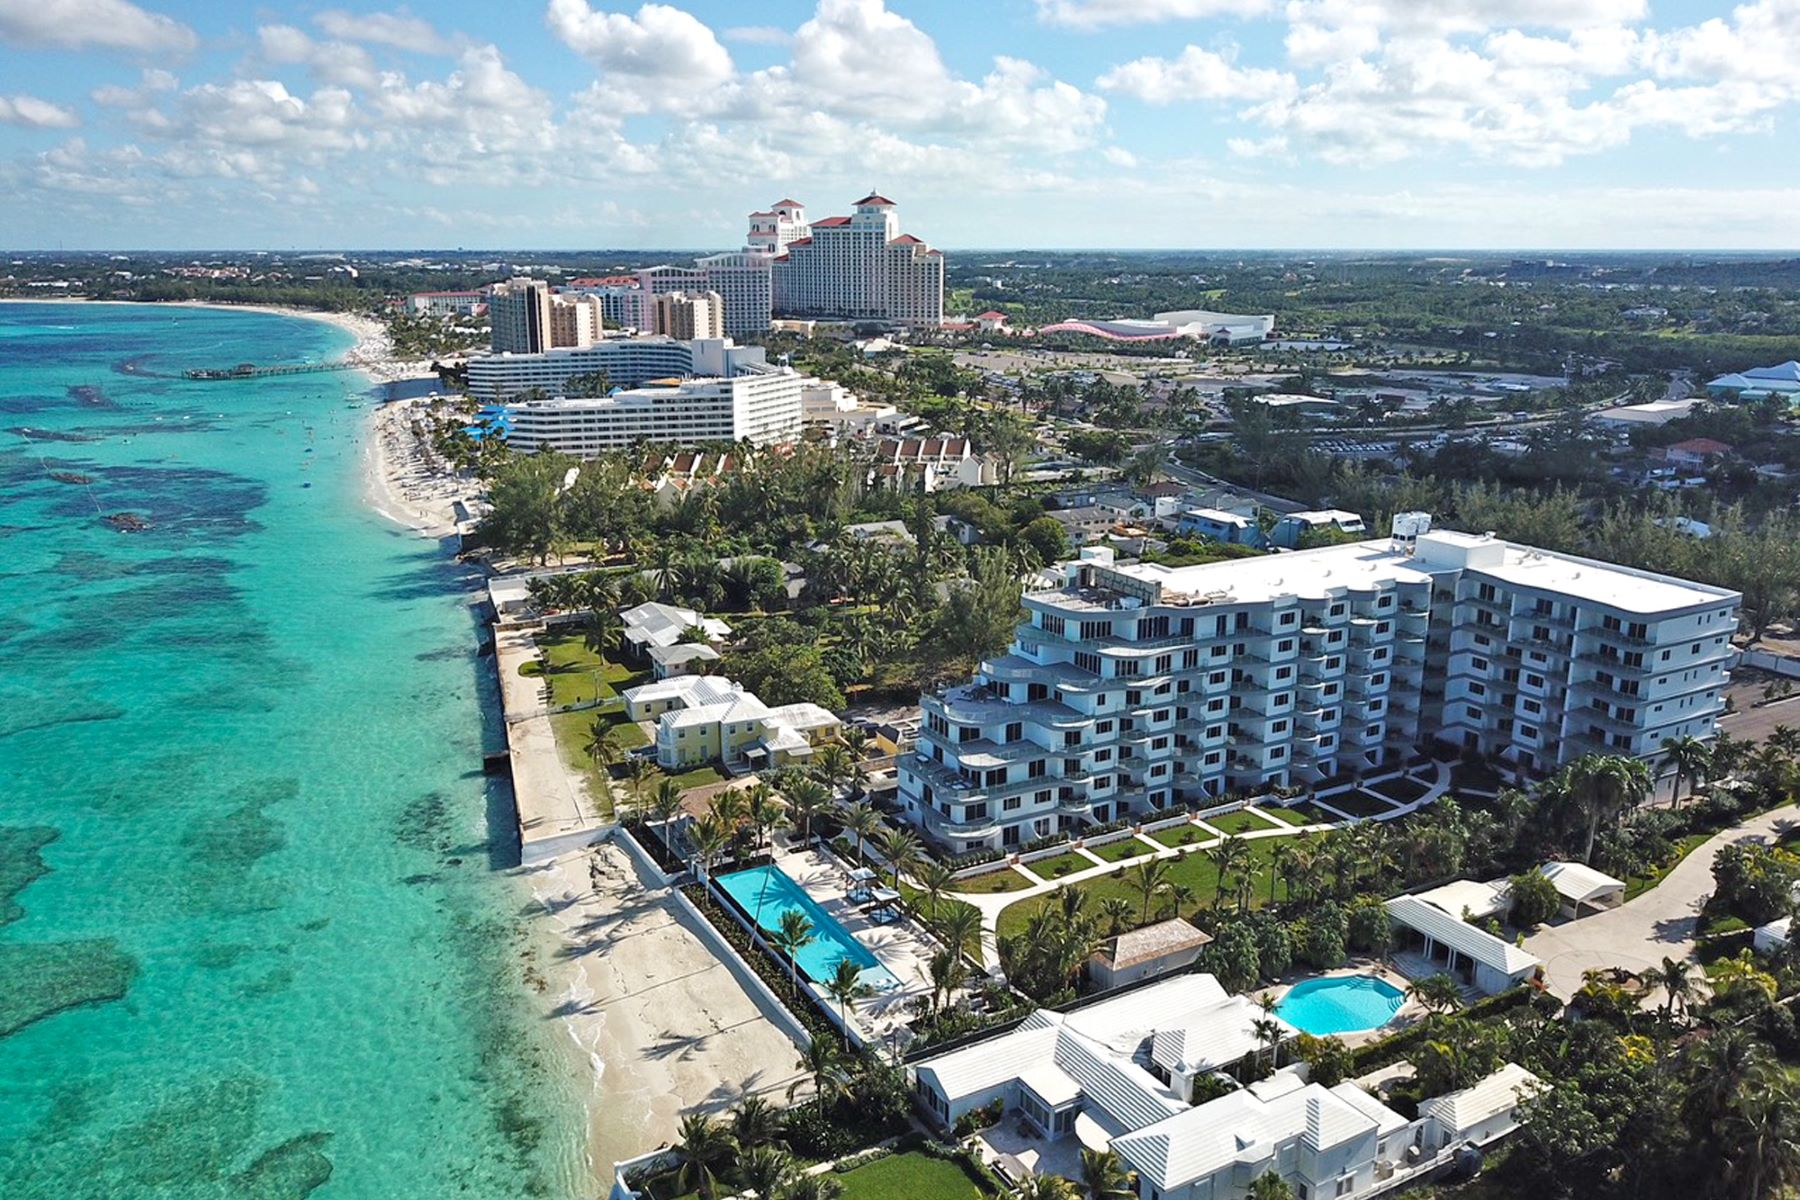 Condominium for Sale at ONE Cable Beach - Ezlo Collection One Cable Beach, Cable Beach, Nassau And Paradise Island Bahamas